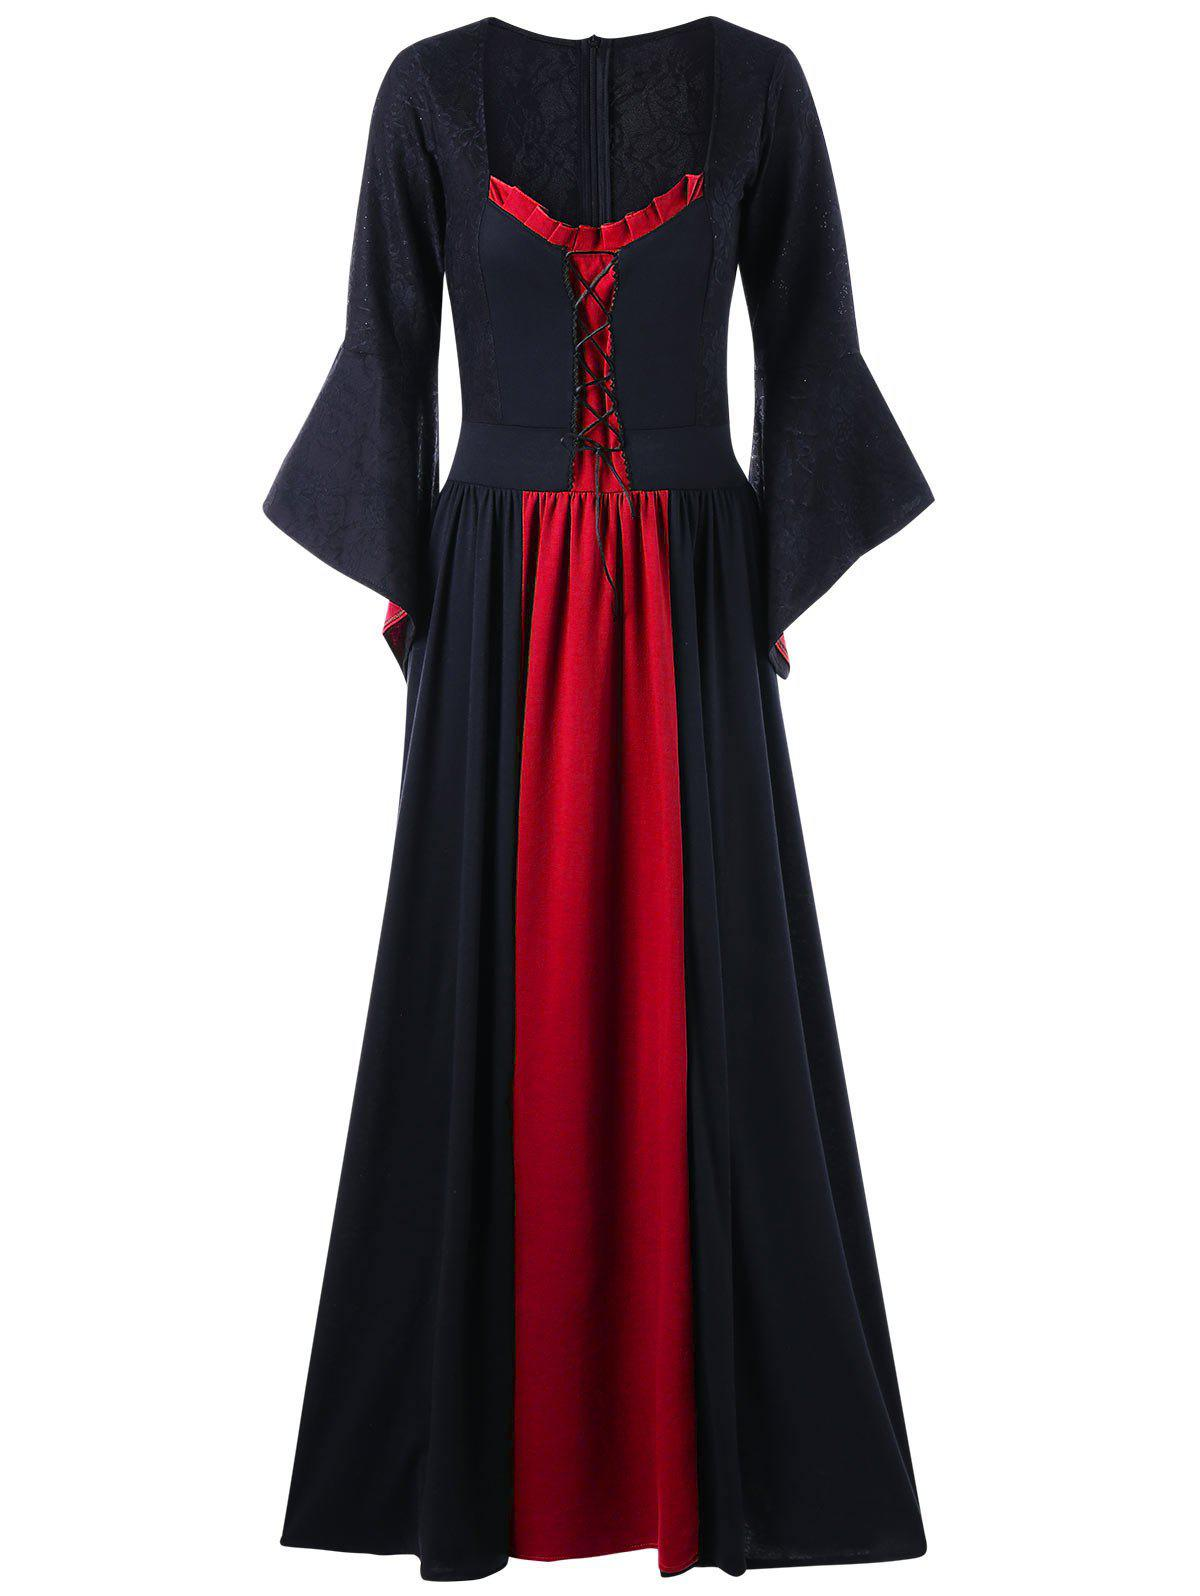 Plus Size Flare Sleeve Maxi Gothic DressWOMEN<br><br>Size: 5XL; Color: BLACK&amp;RED; Style: Gothic; Material: Polyester; Silhouette: A-Line; Dresses Length: Floor-Length; Neckline: Square Collar; Sleeve Length: Long Sleeves; Embellishment: Lace; Pattern Type: Solid; With Belt: No; Season: Fall,Spring; Weight: 0.7100kg; Package Contents: 1 x Dress;